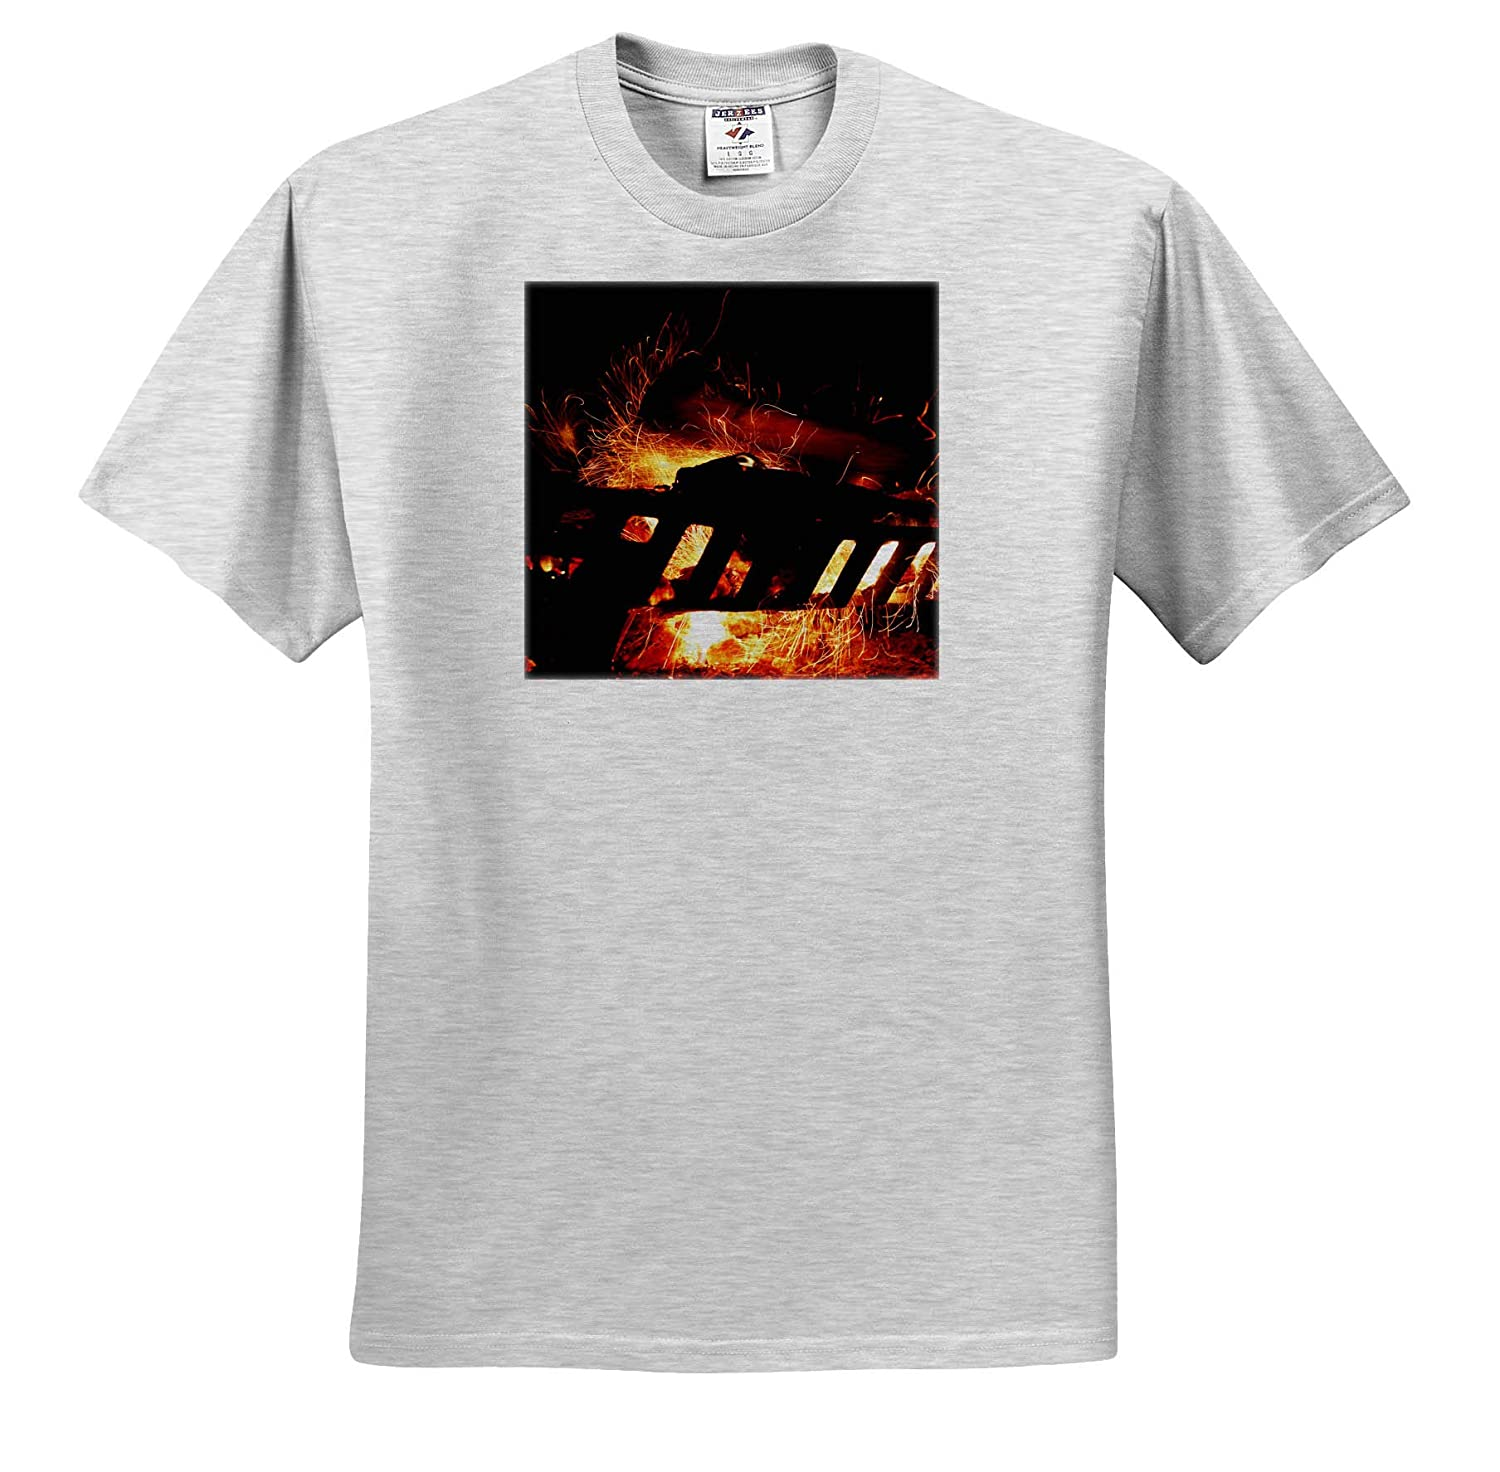 - T-Shirts Photograph capturing Sparks Created by a Log Being Thrown on a fire 3dRose Stamp City Nature